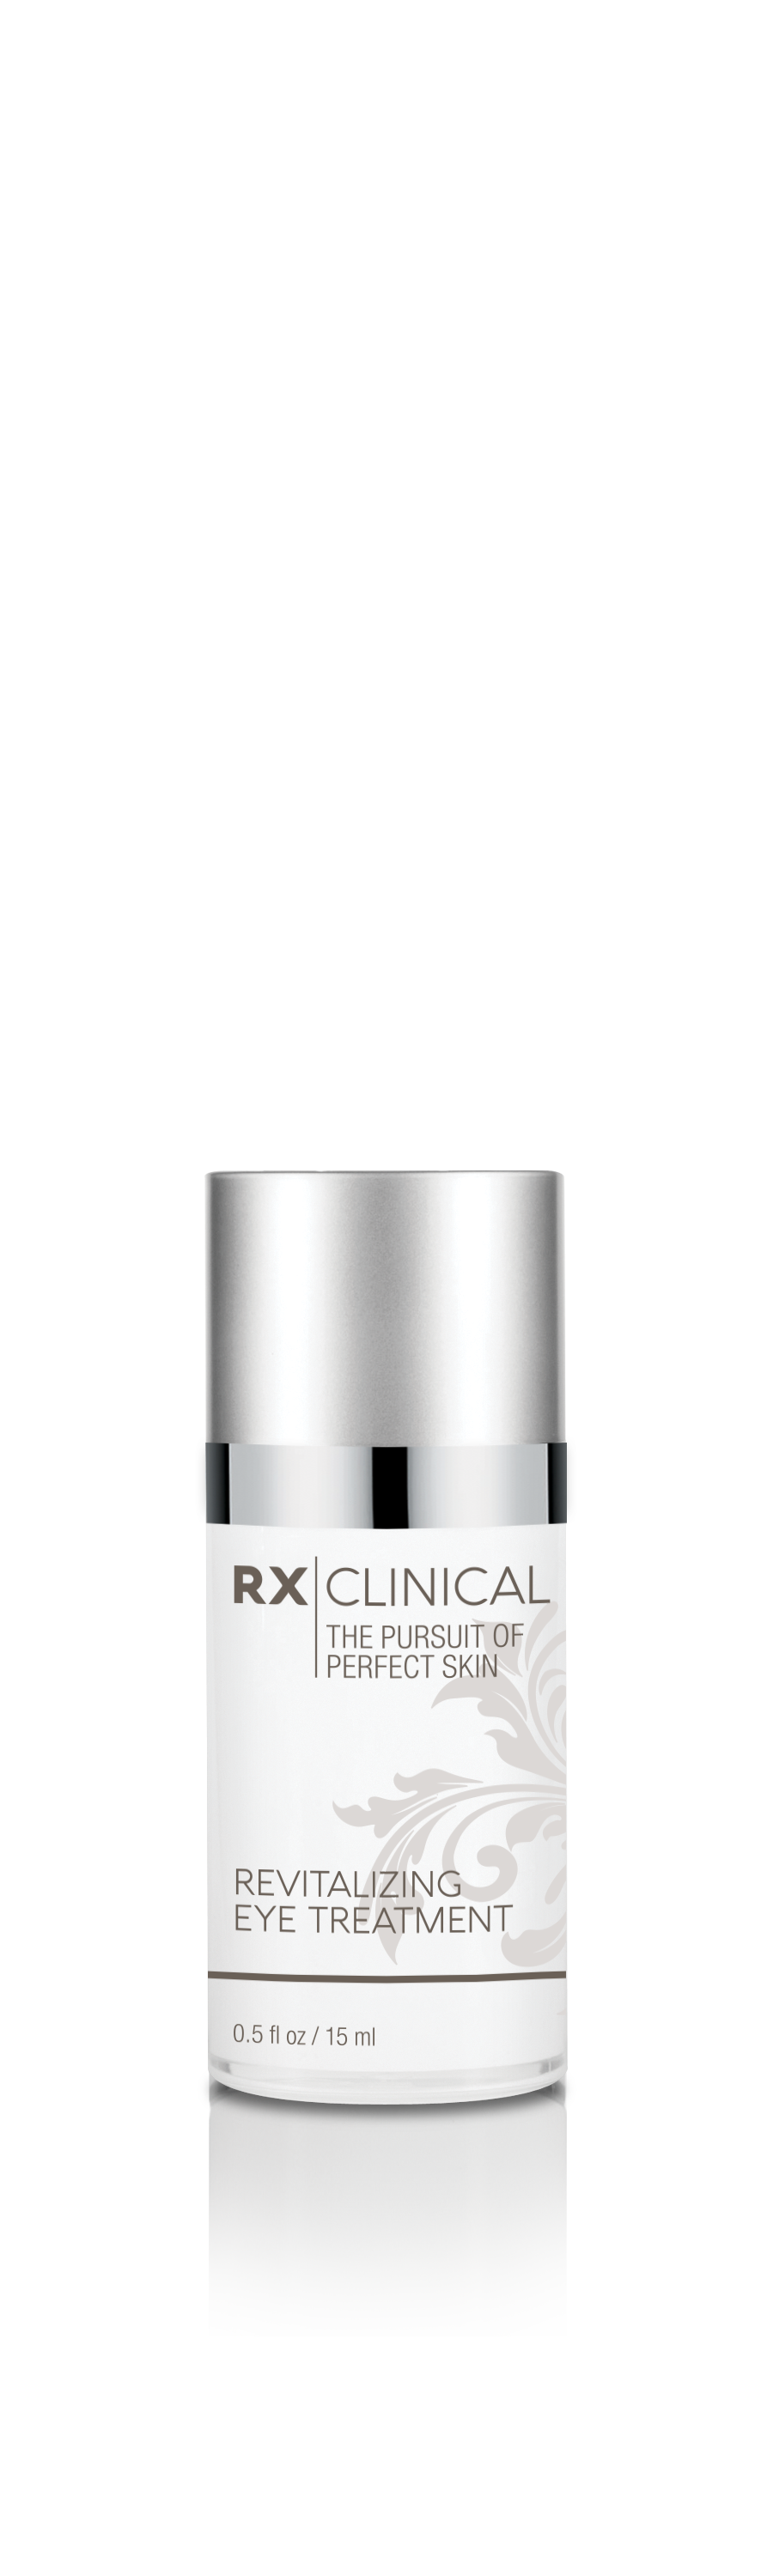 Pursuit of Perfect Skin | Rx Clinical Cosmeceuticals